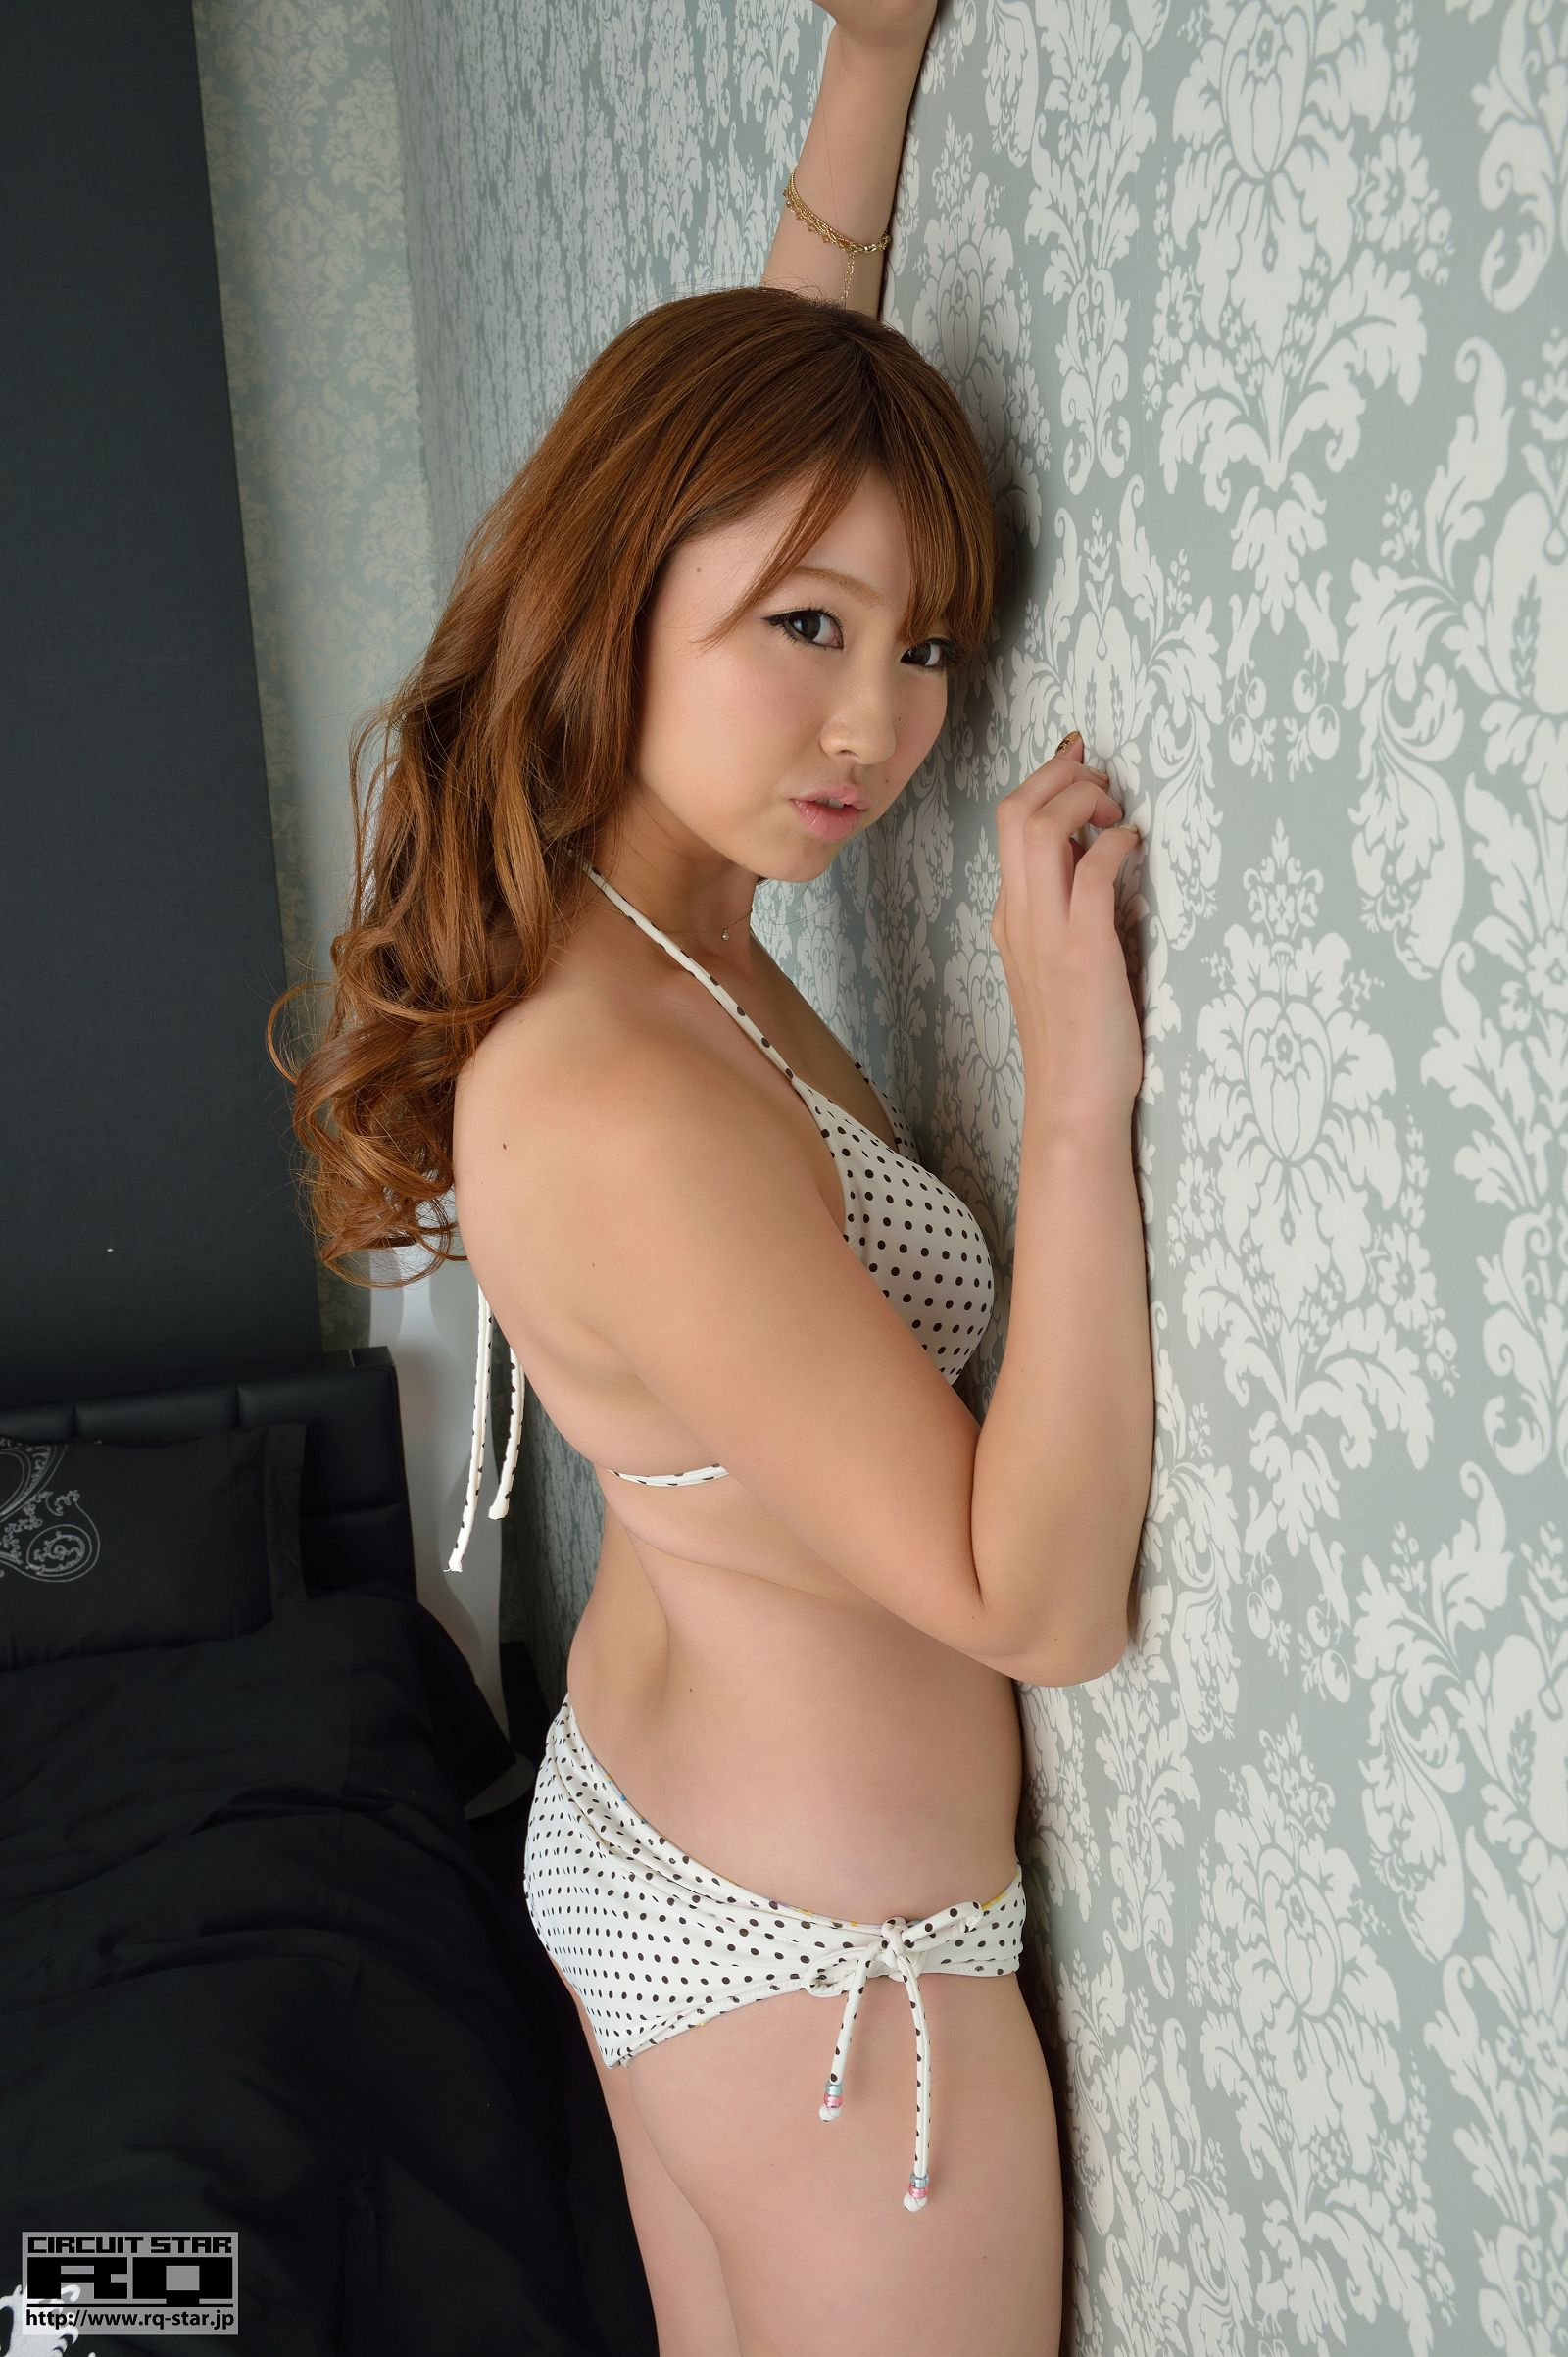 [RQ STAR美女] NO.00699 Chinatsu Sasaki 佐々木千夏 Swim Suits[50P] RQ STAR 第3张